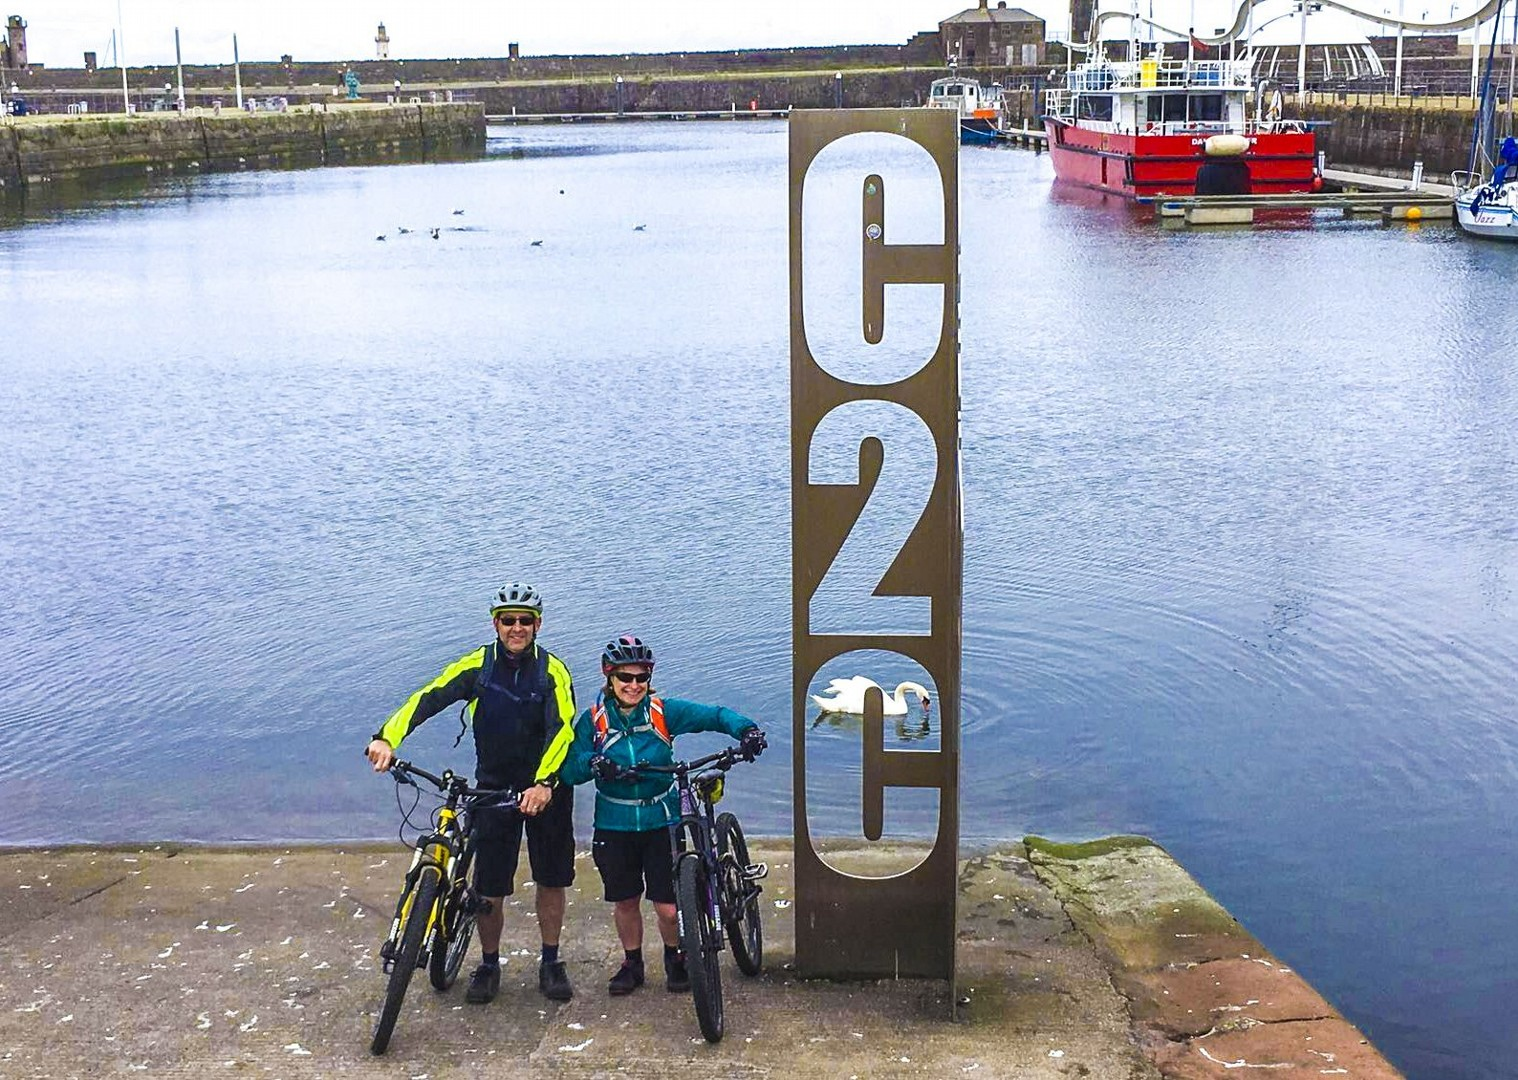 coast-to-coast-uk-whitehaven-to-newcastle-experience.jpg - UK - C2C - Coast to Coast 5 Days Cycling - Self-Guided Leisure Cycling Holiday - Leisure Cycling